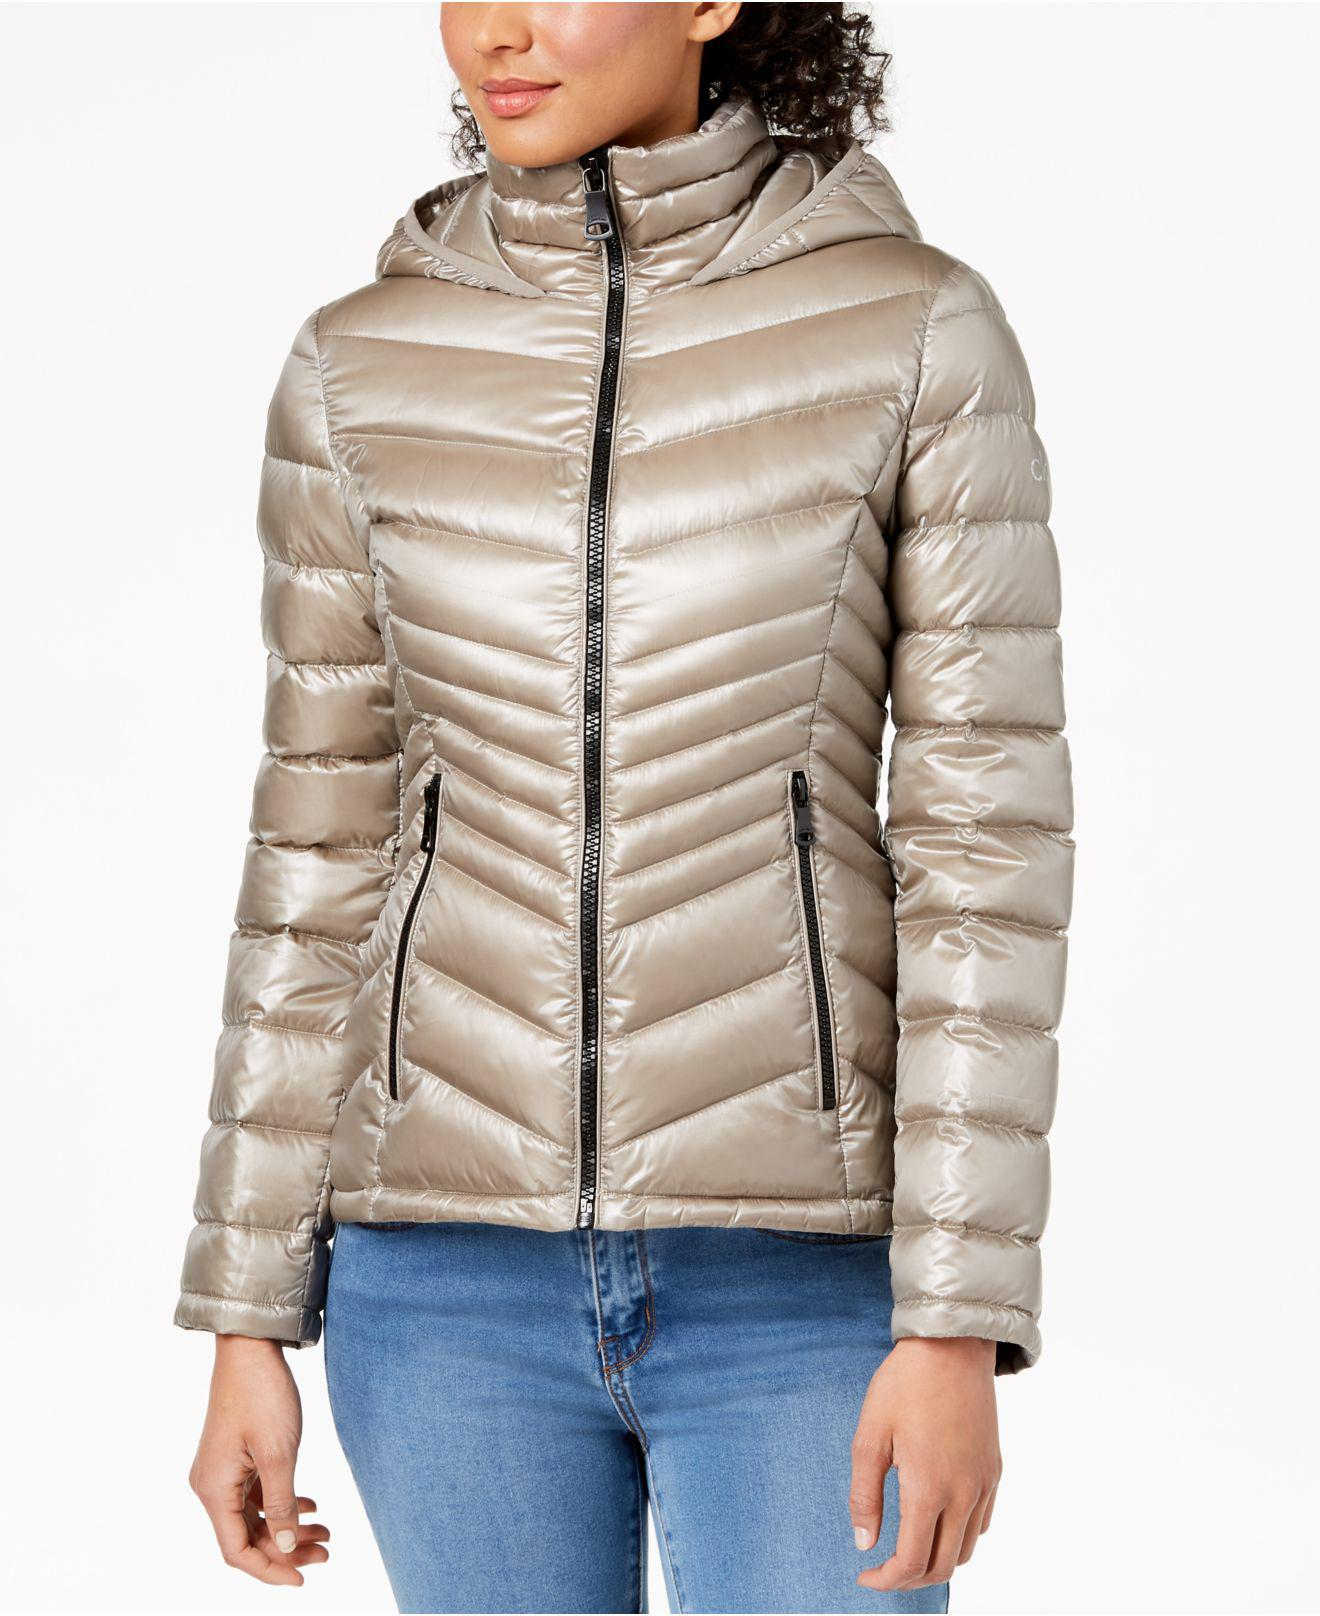 8dec5d8ac505 Lyst - Calvin Klein Hooded Packable Puffer Coat in Natural